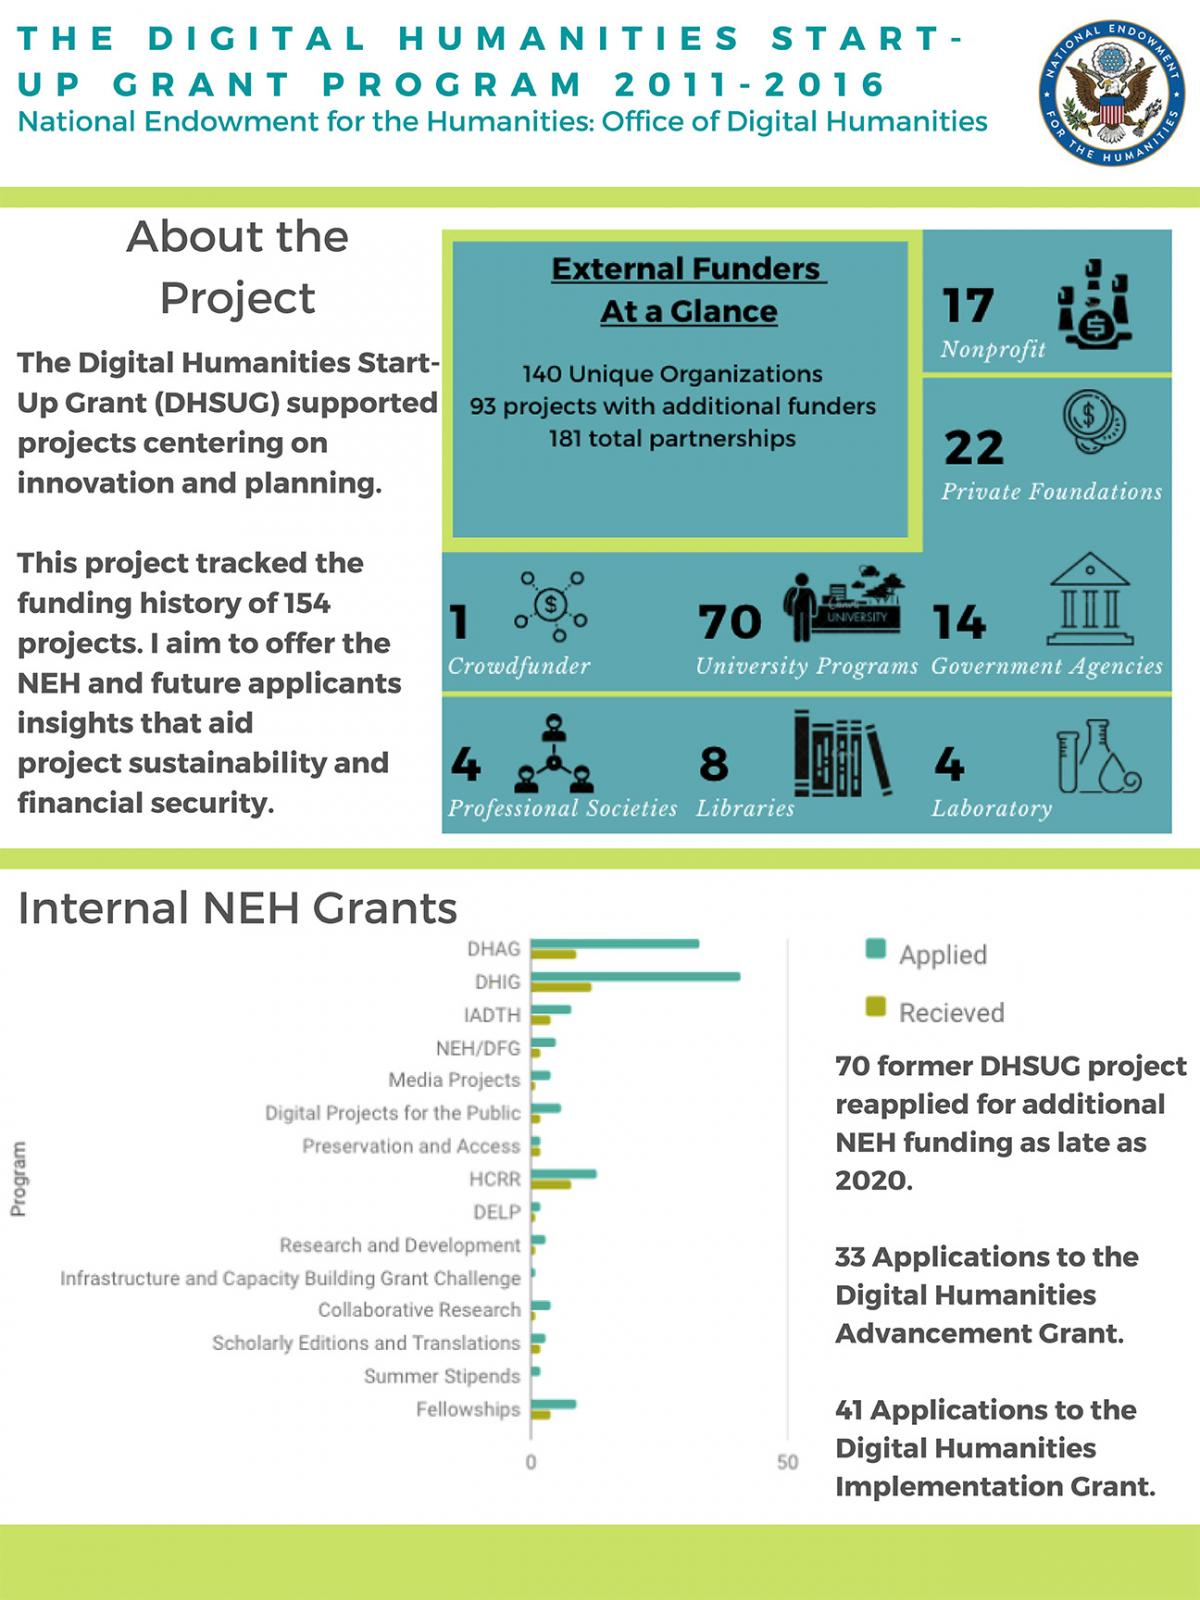 The Funding Lifecycles of Digital Humanities Start-Up Grant Projects